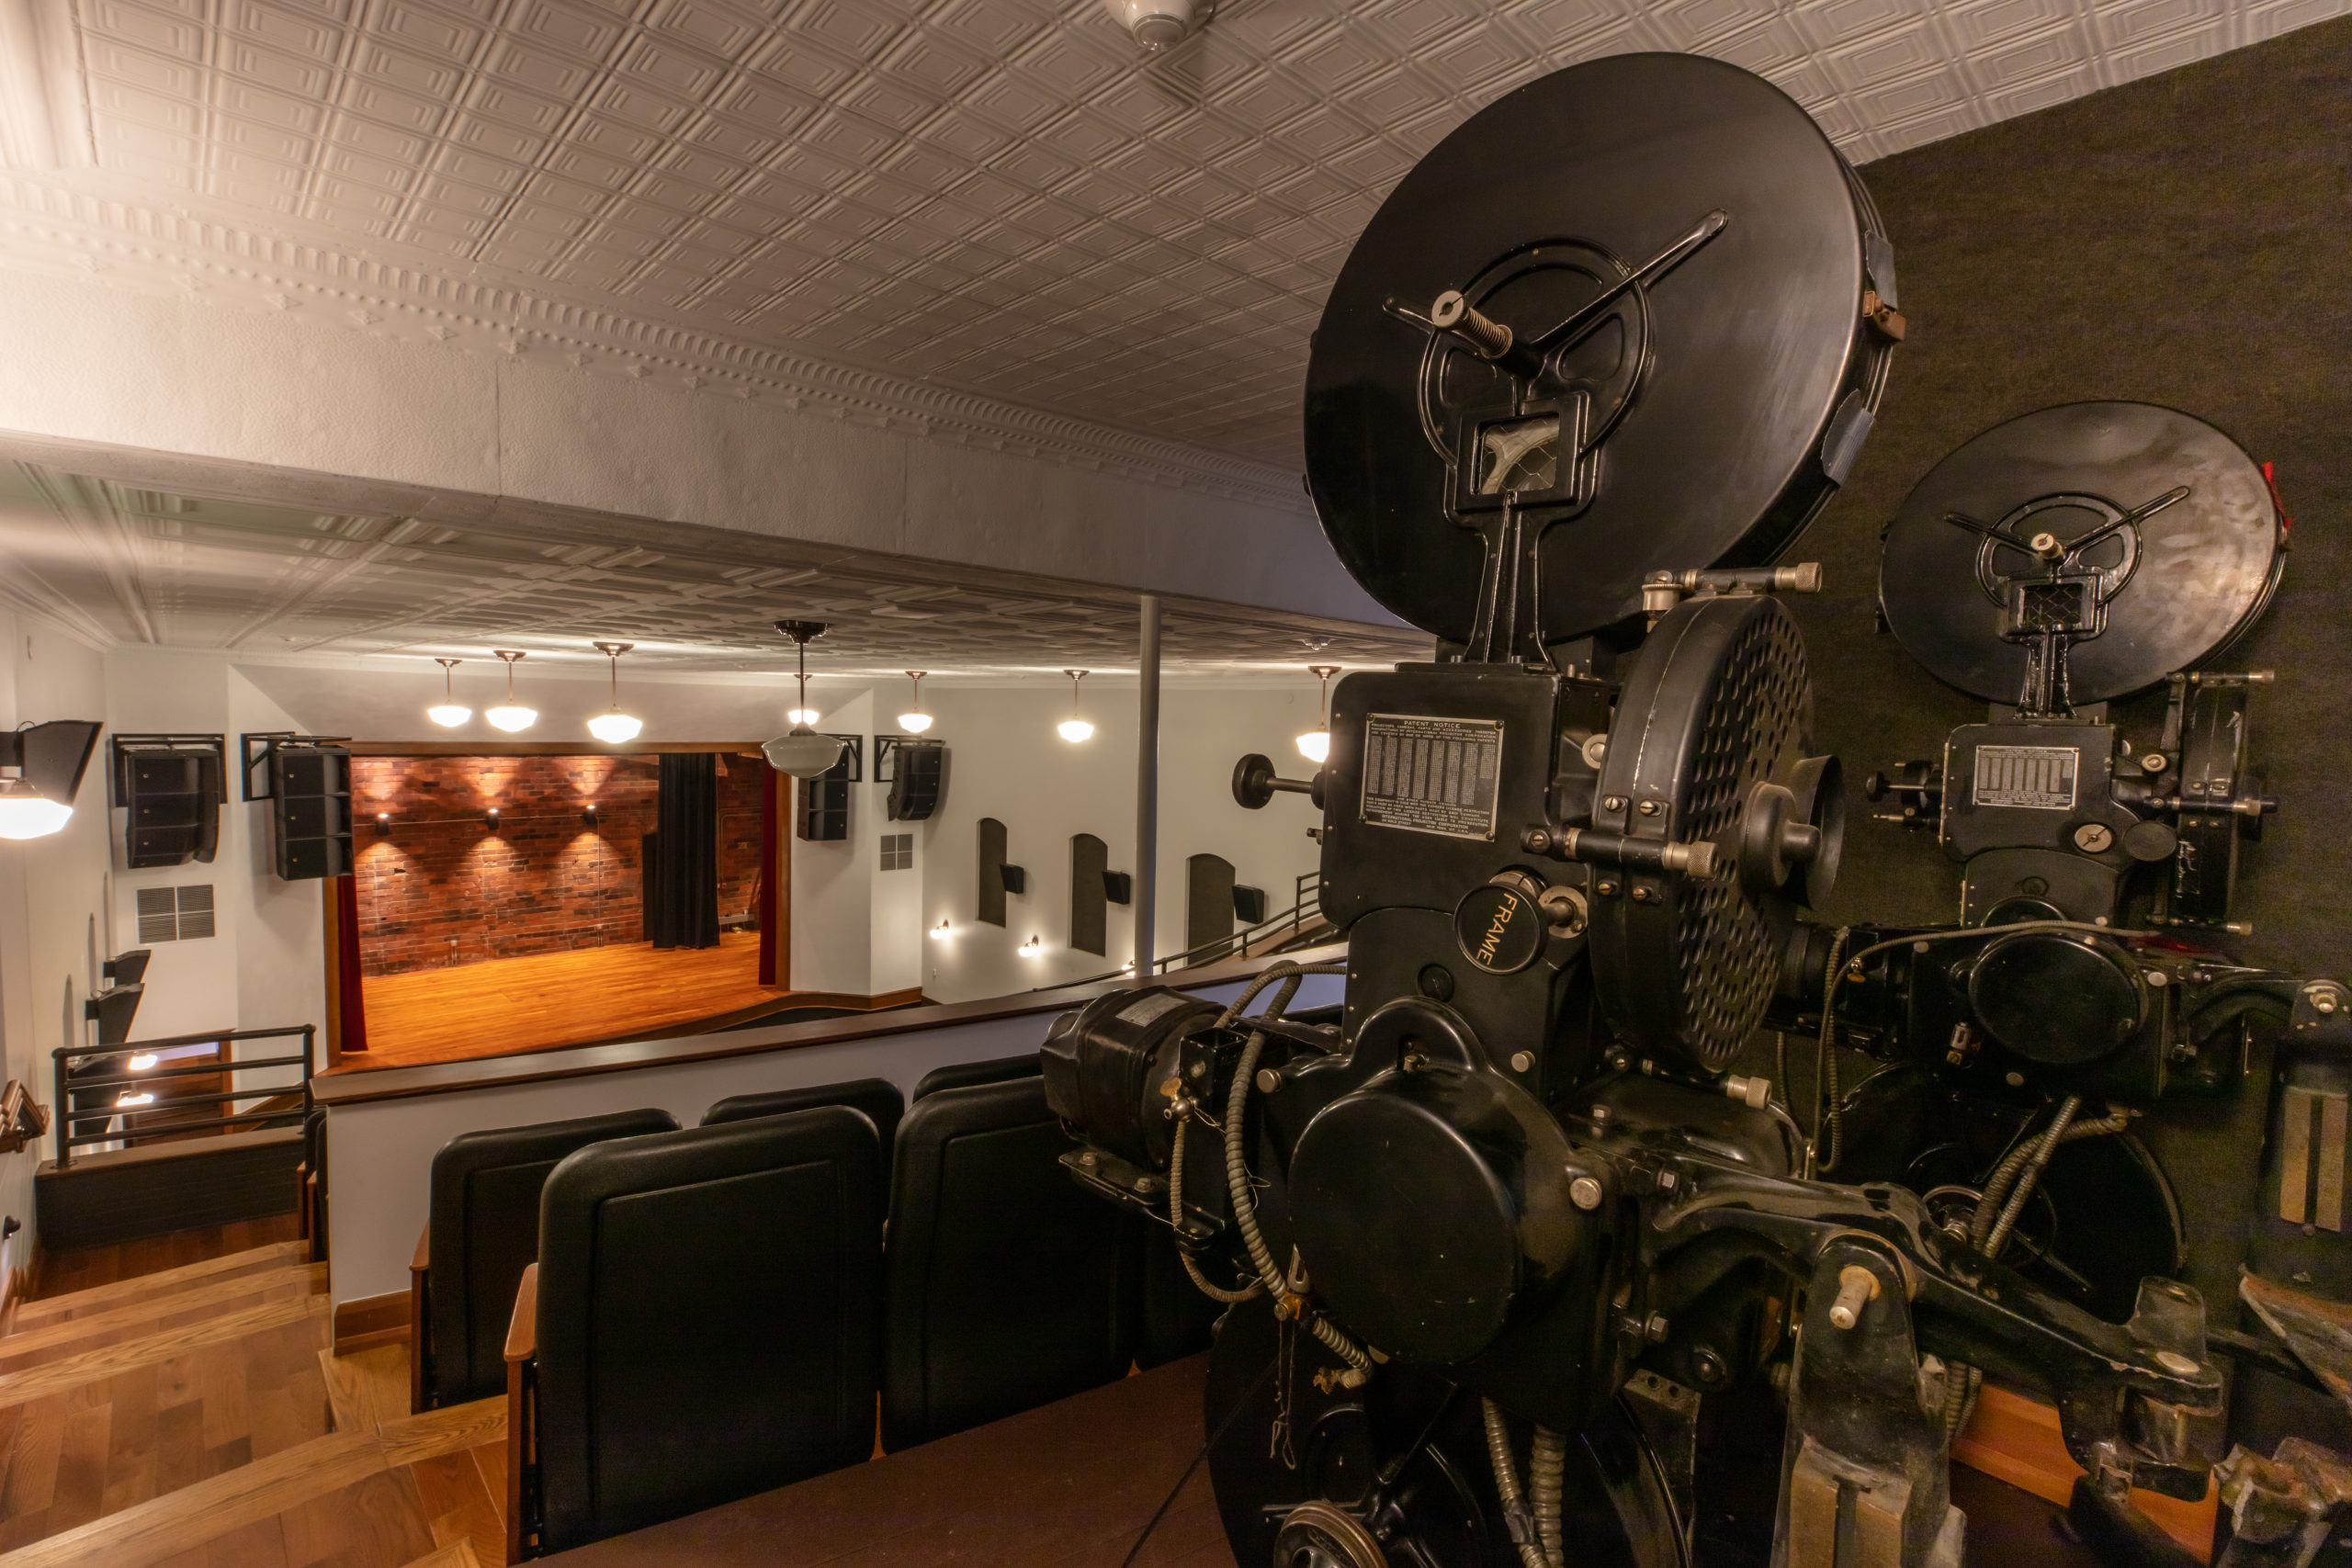 Interior of Brooklyn Opera House viewing old original film equipment in the back of the balcony